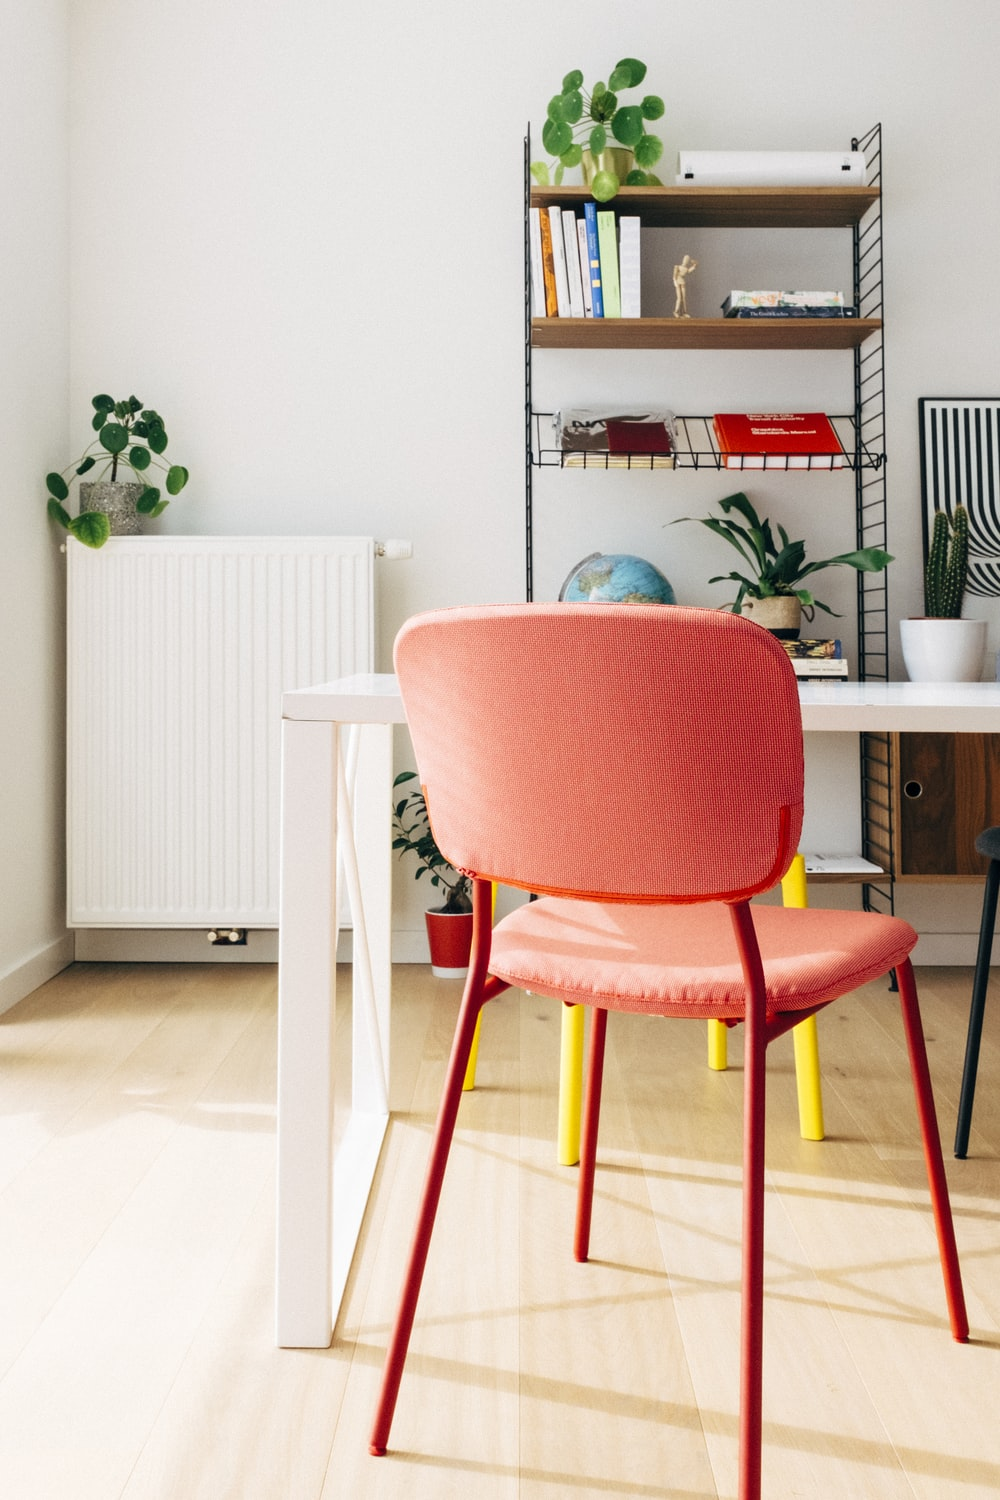 red and white chair beside brown wooden table